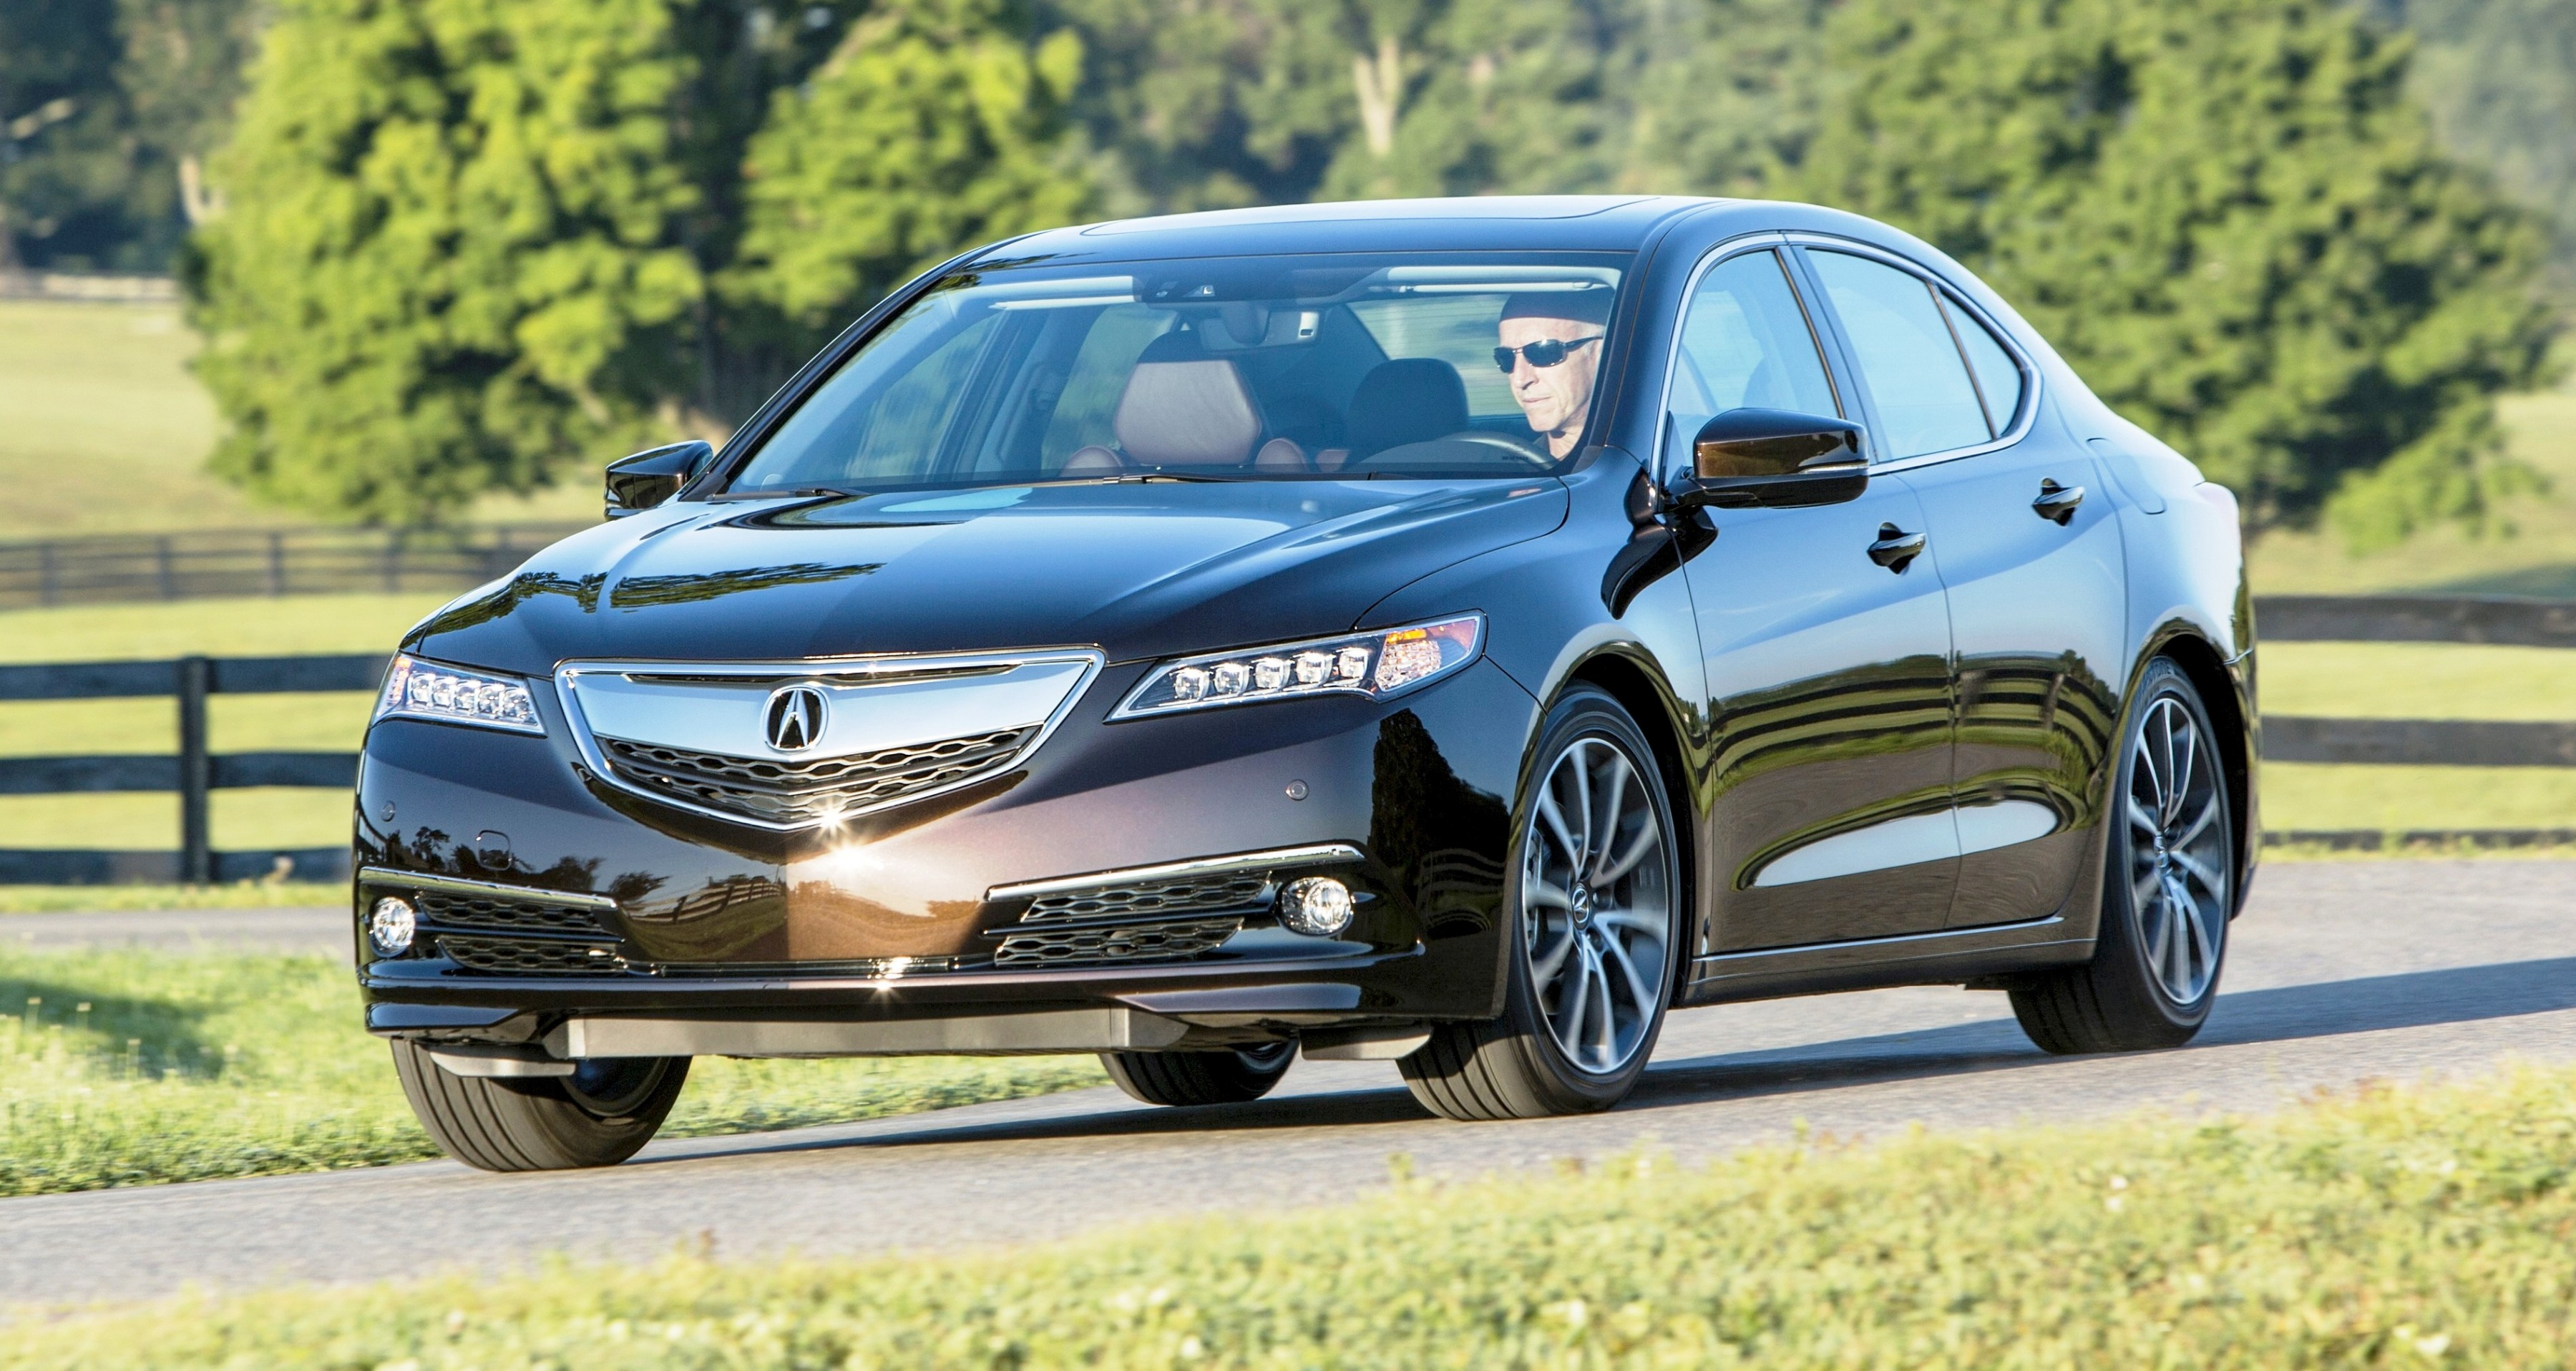 Tlx 0 60 Time.html | Autos Post